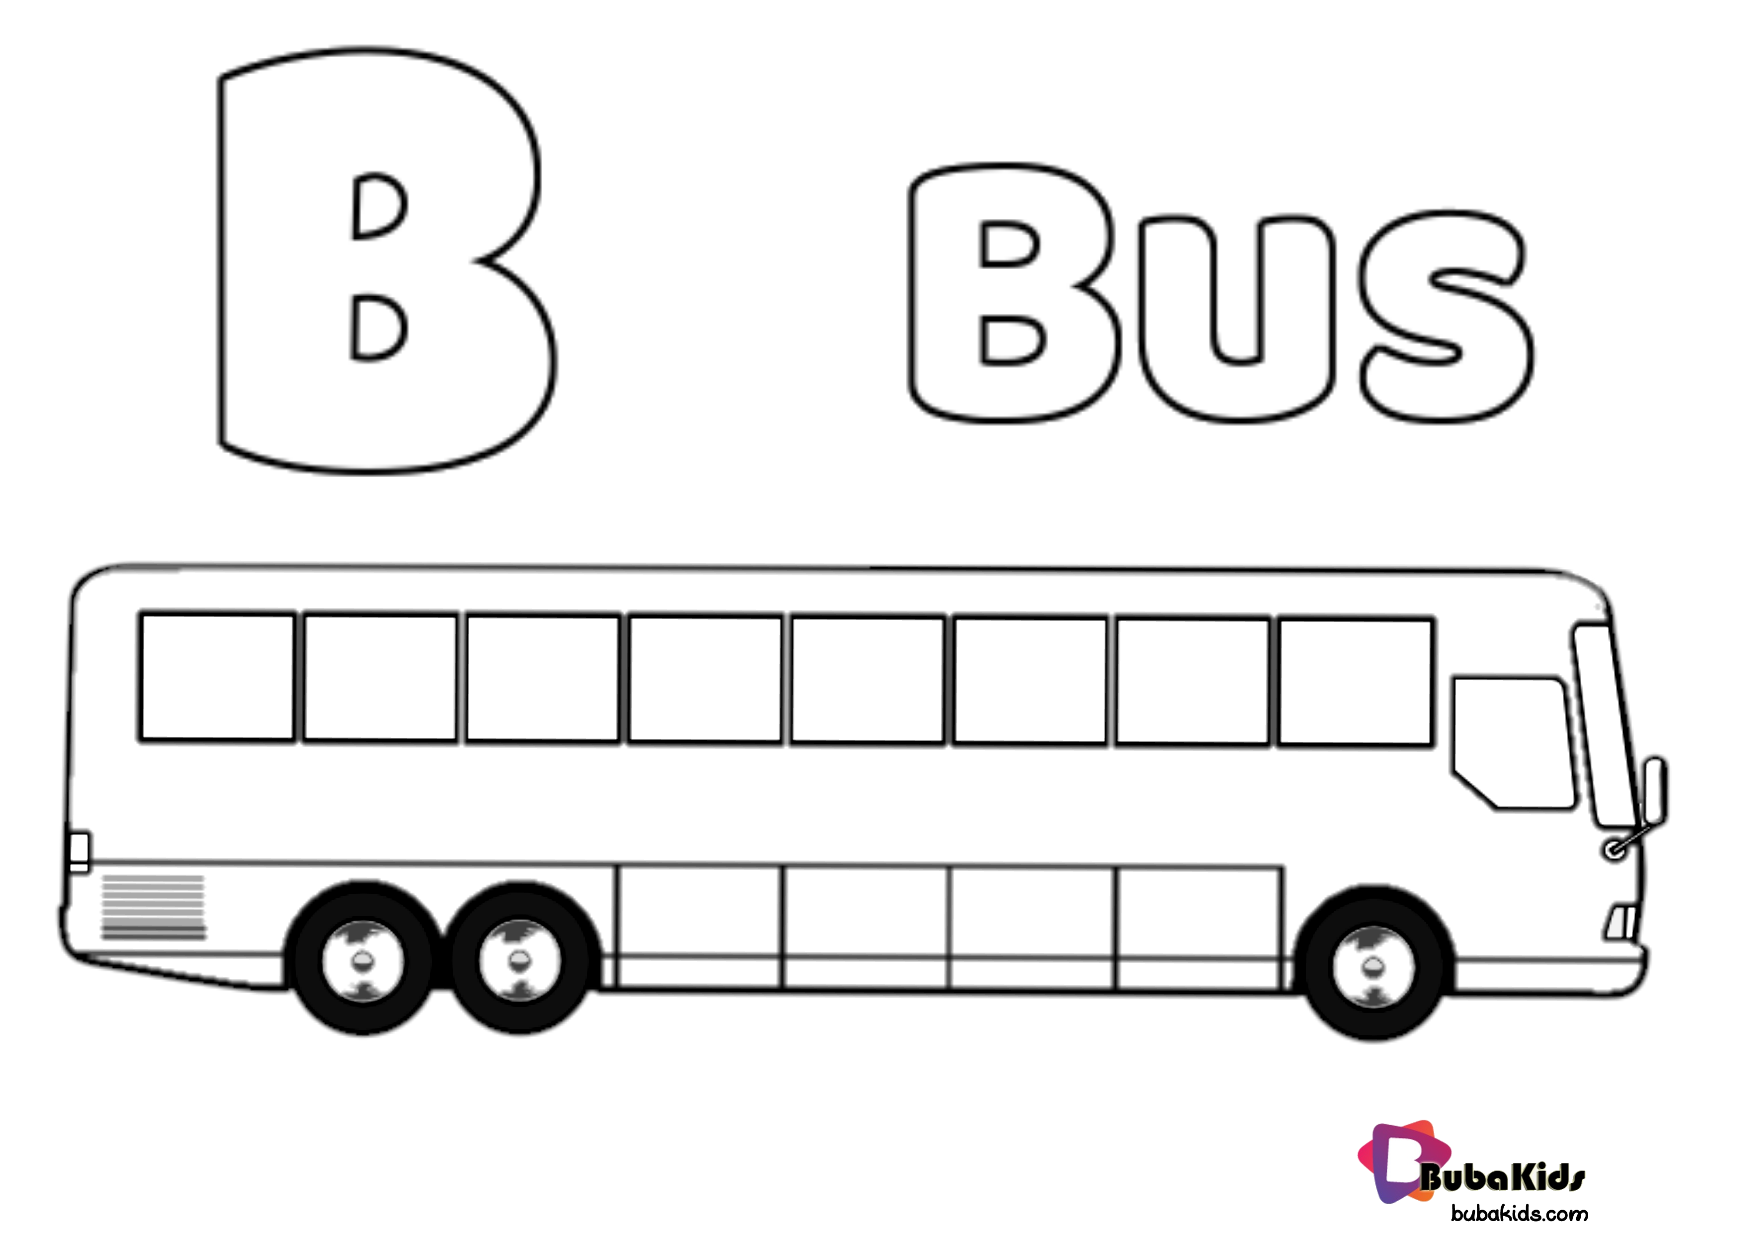 Alphabet B For Bus Coloring Page Printable Alphabet Bubakids Com Bus City Bus School Bus Transportations Alphabe Coloring Pages Bus Tayo The Little Bus